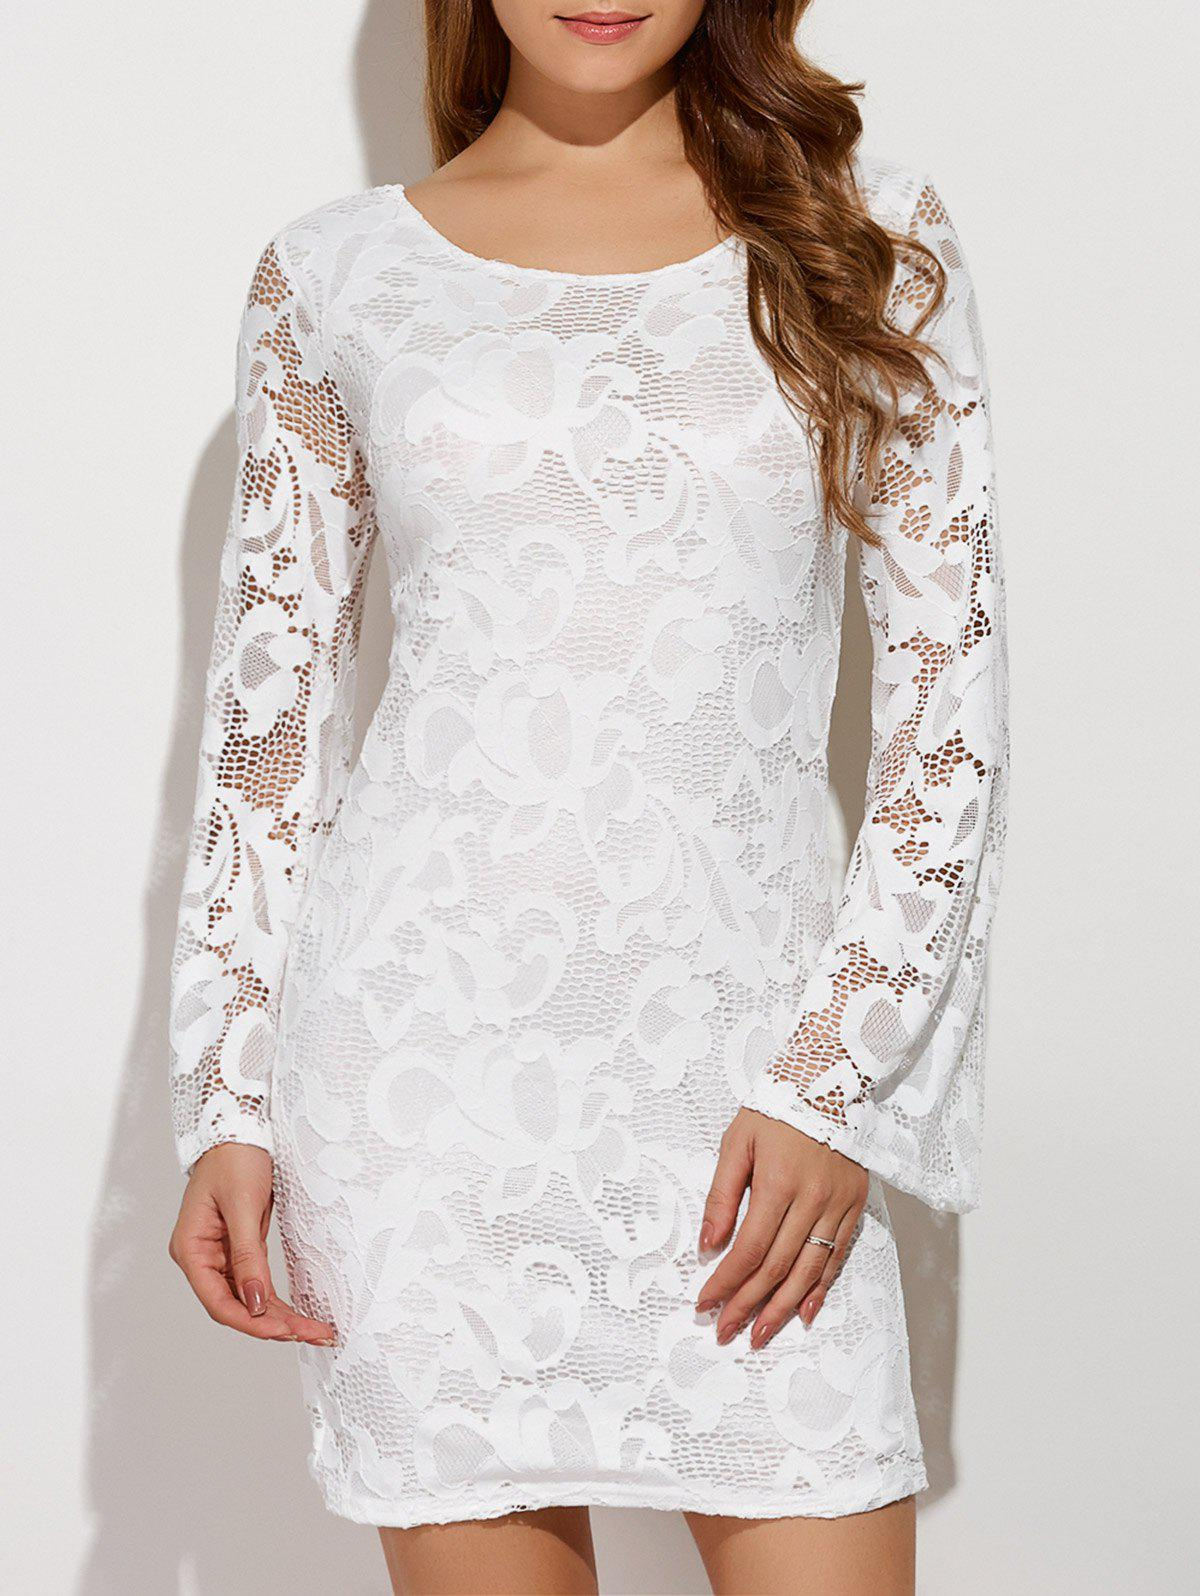 Criss-Cross Lace Dress With Flare SleeveWomen<br><br><br>Size: M<br>Color: WHITE